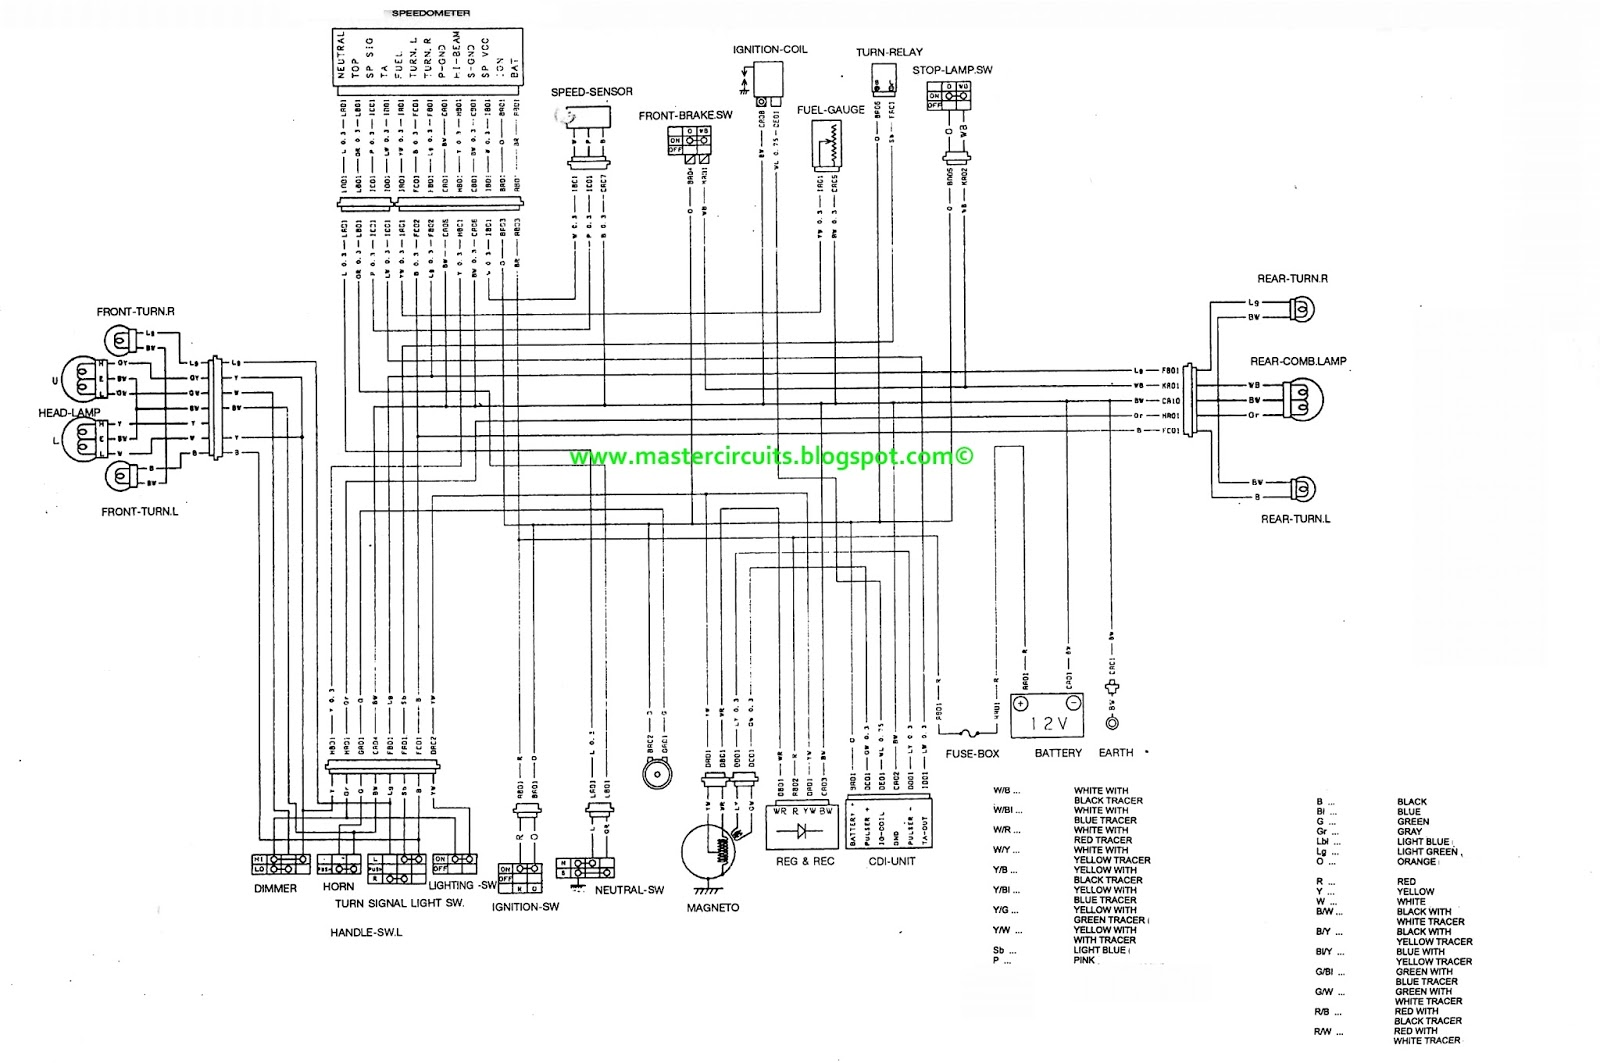 raider r150 wiring diagram techy at day blogger at noon and a gy6 150cc [ 1600 x 1063 Pixel ]